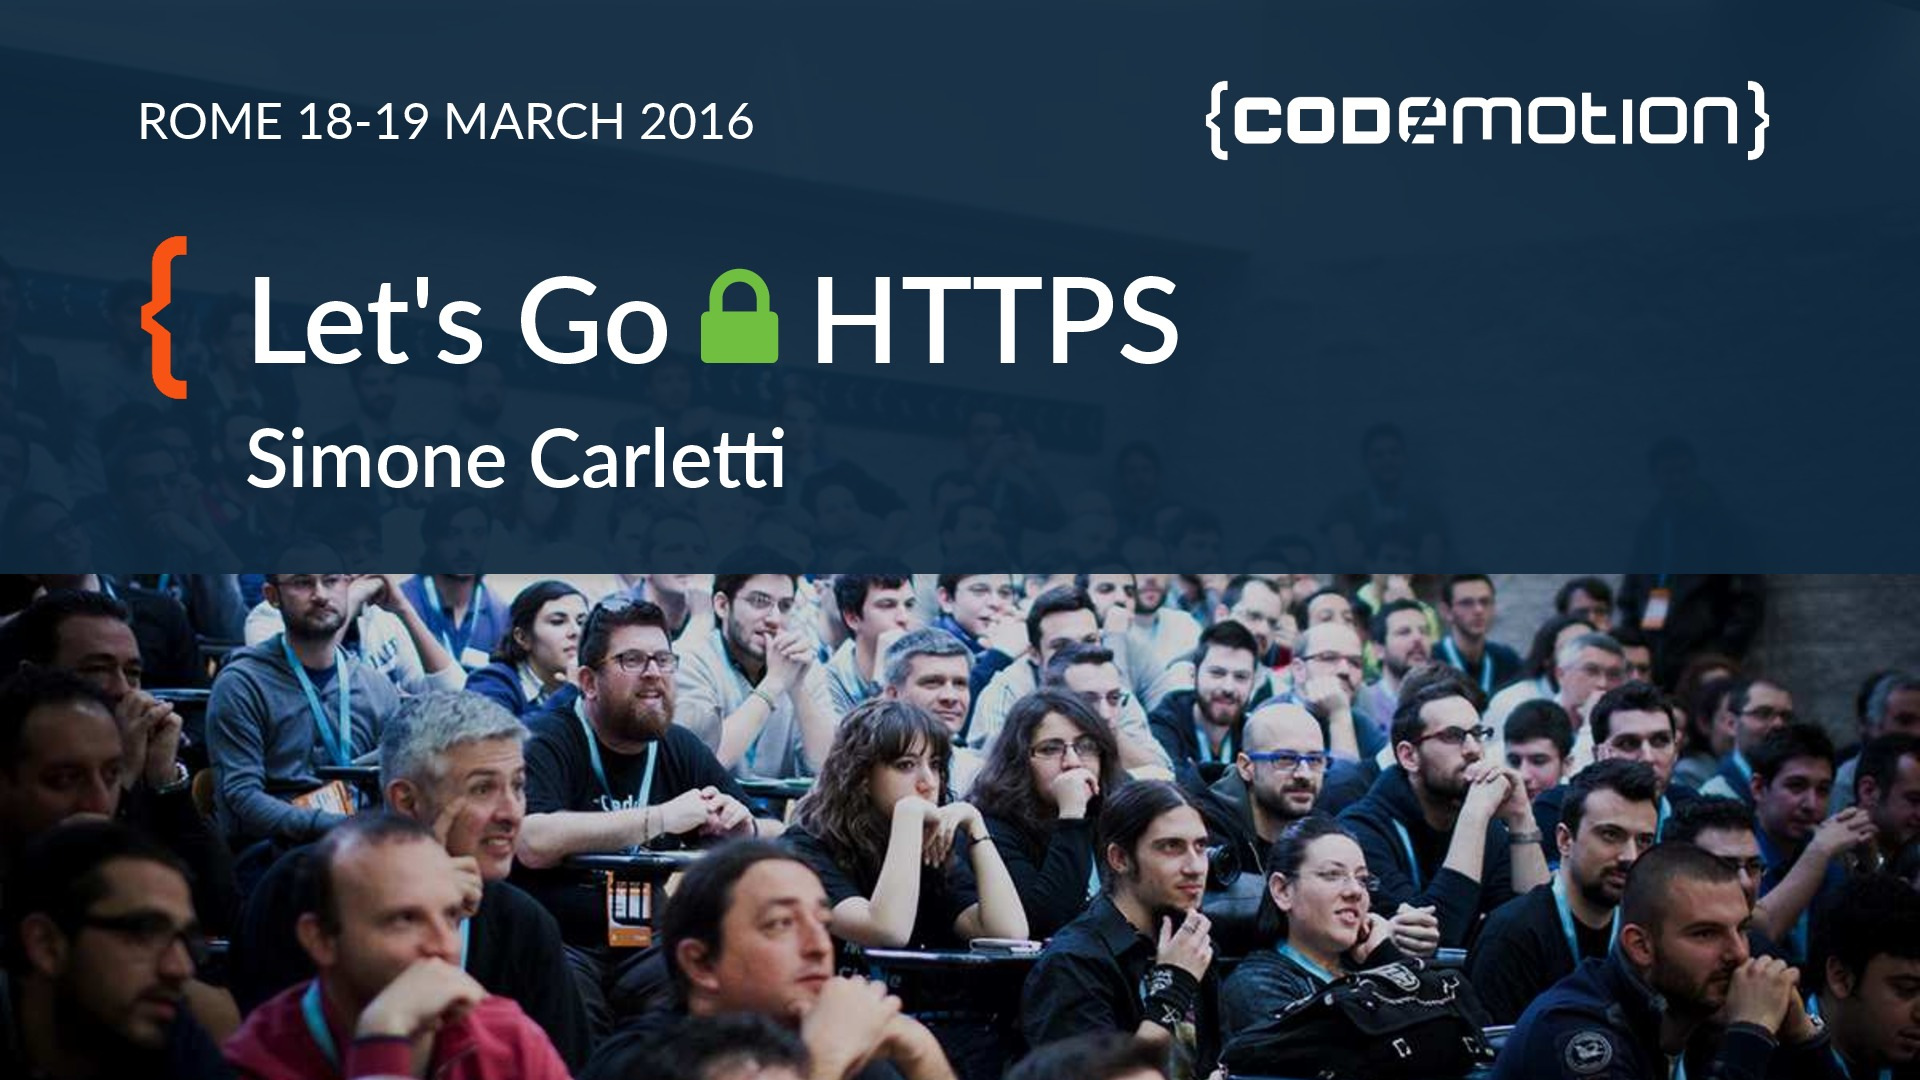 Let's go HTTPS (Codemotion Rome 2016)